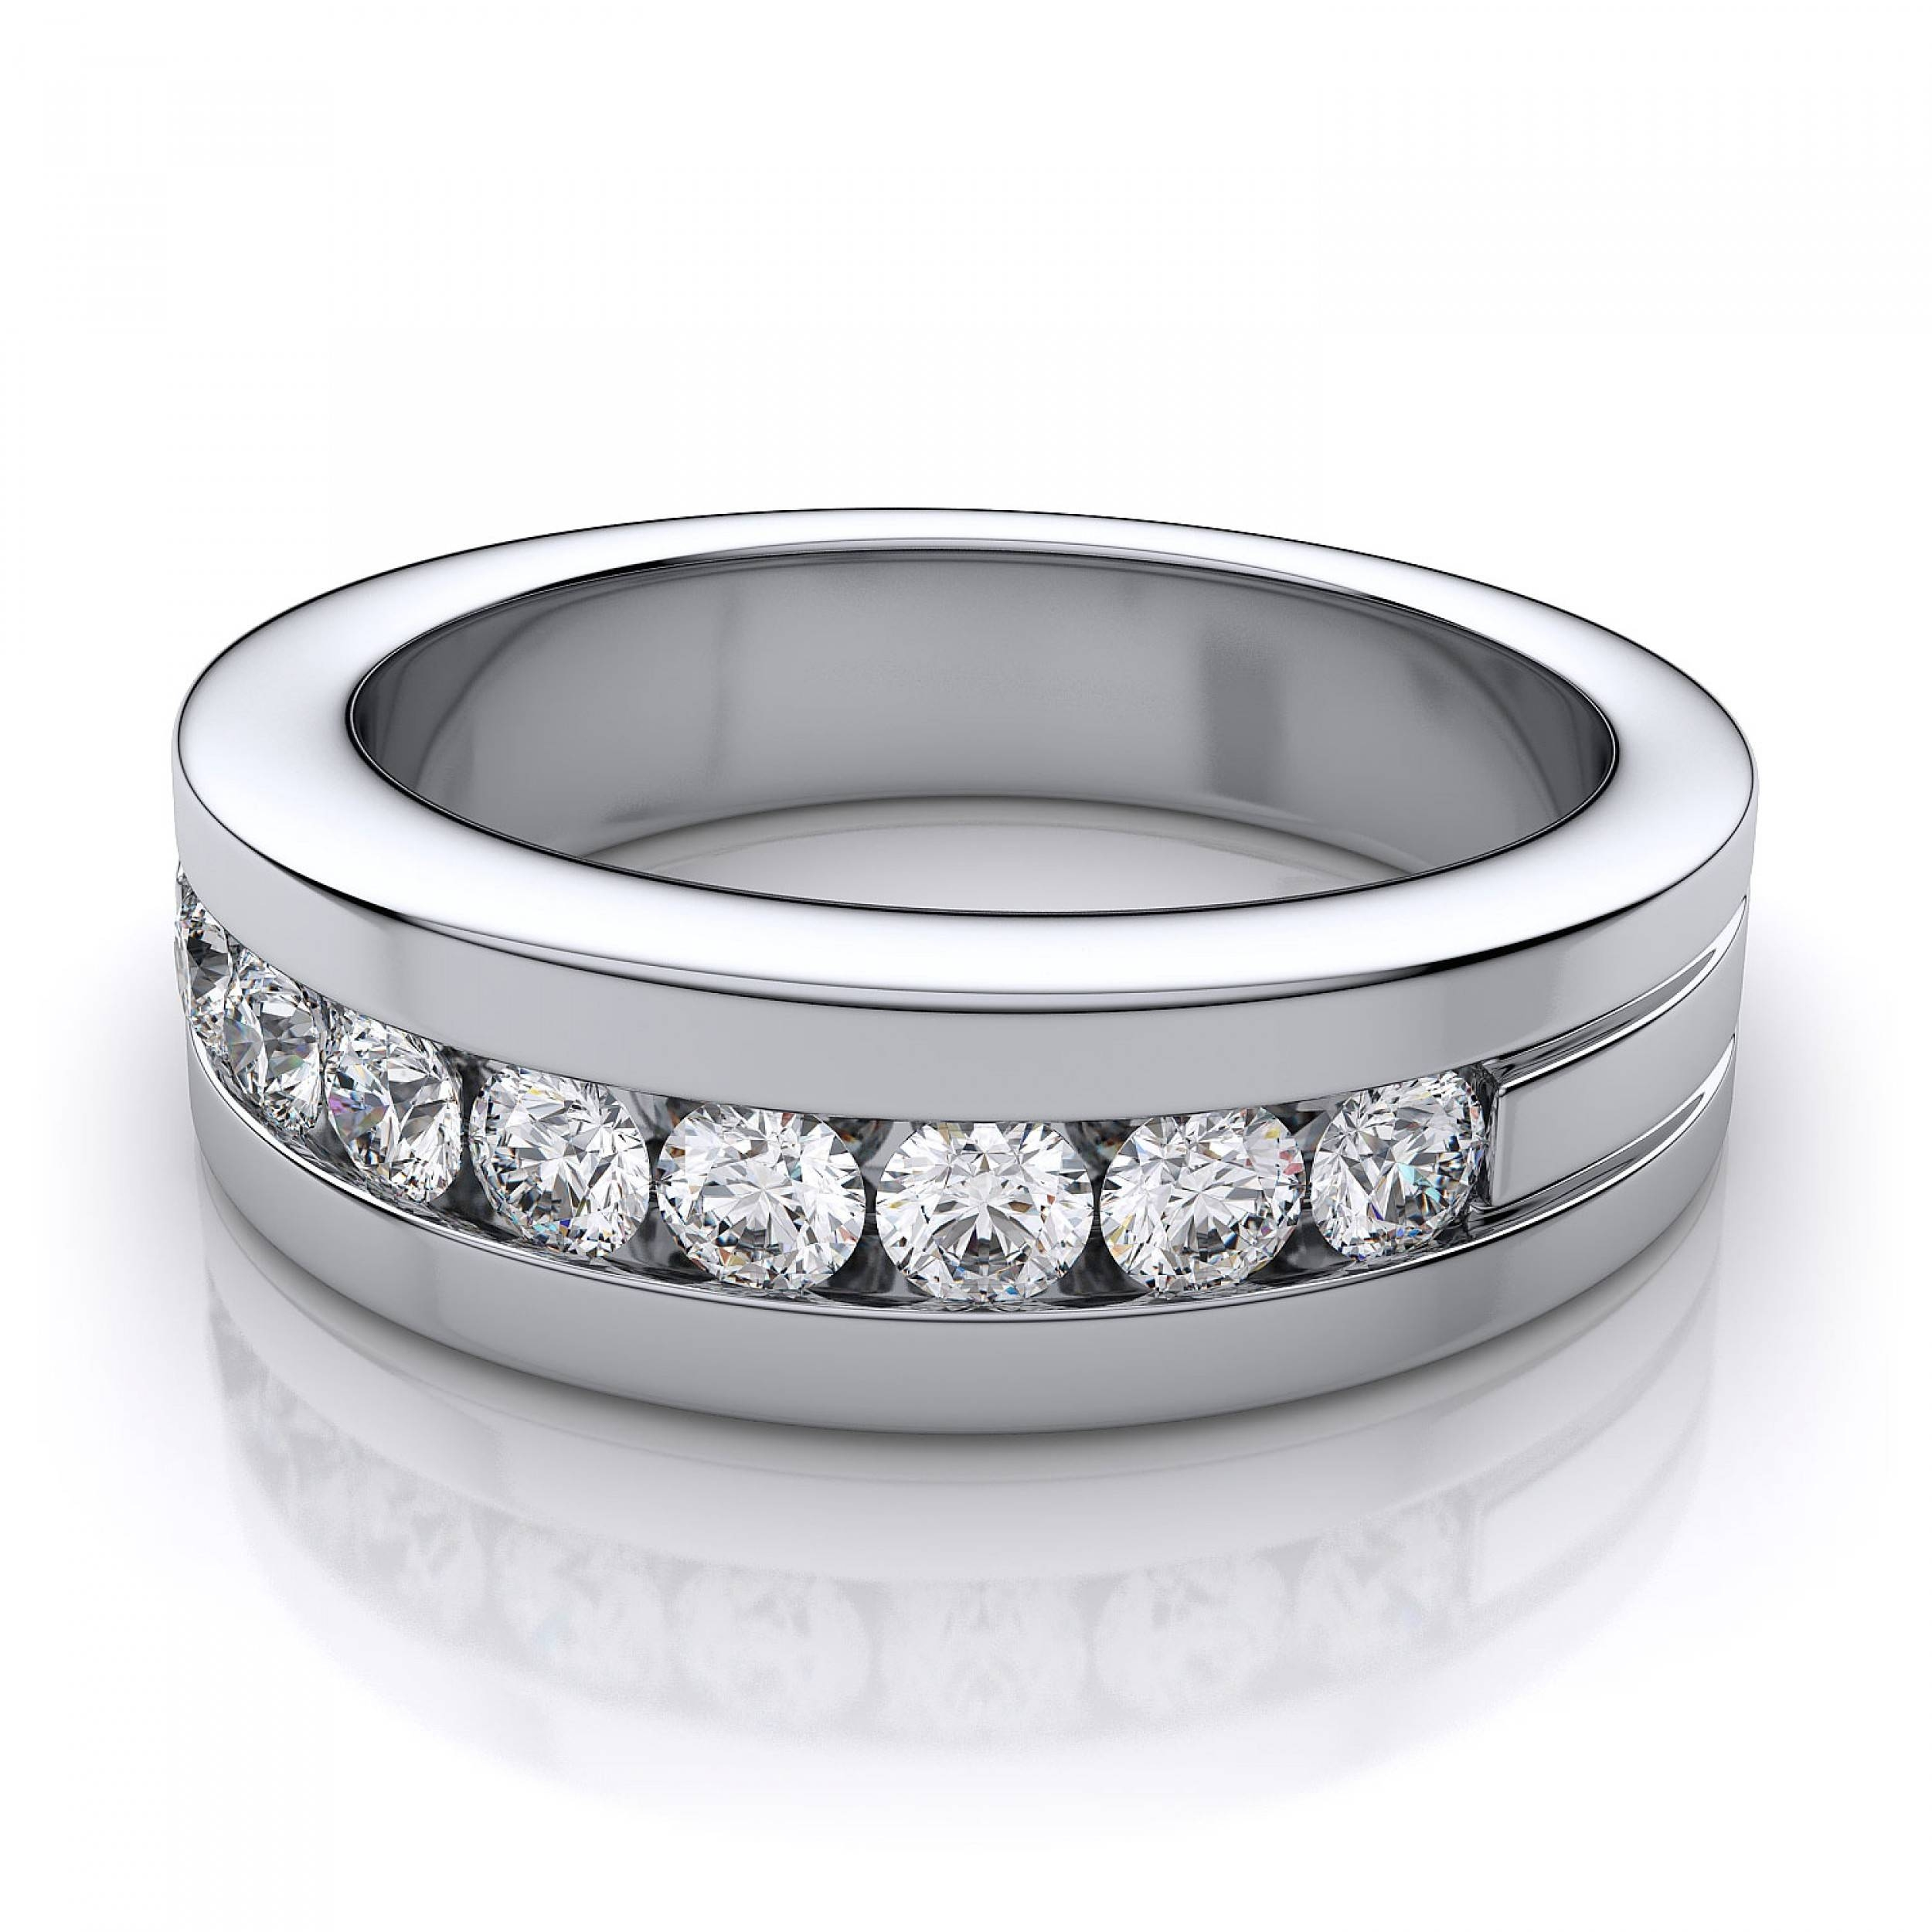 Mens Wedding Engagement Rings Tags : Mens Diamond Wedding Rings Intended For Mens Wedding Diamond Rings (View 12 of 15)